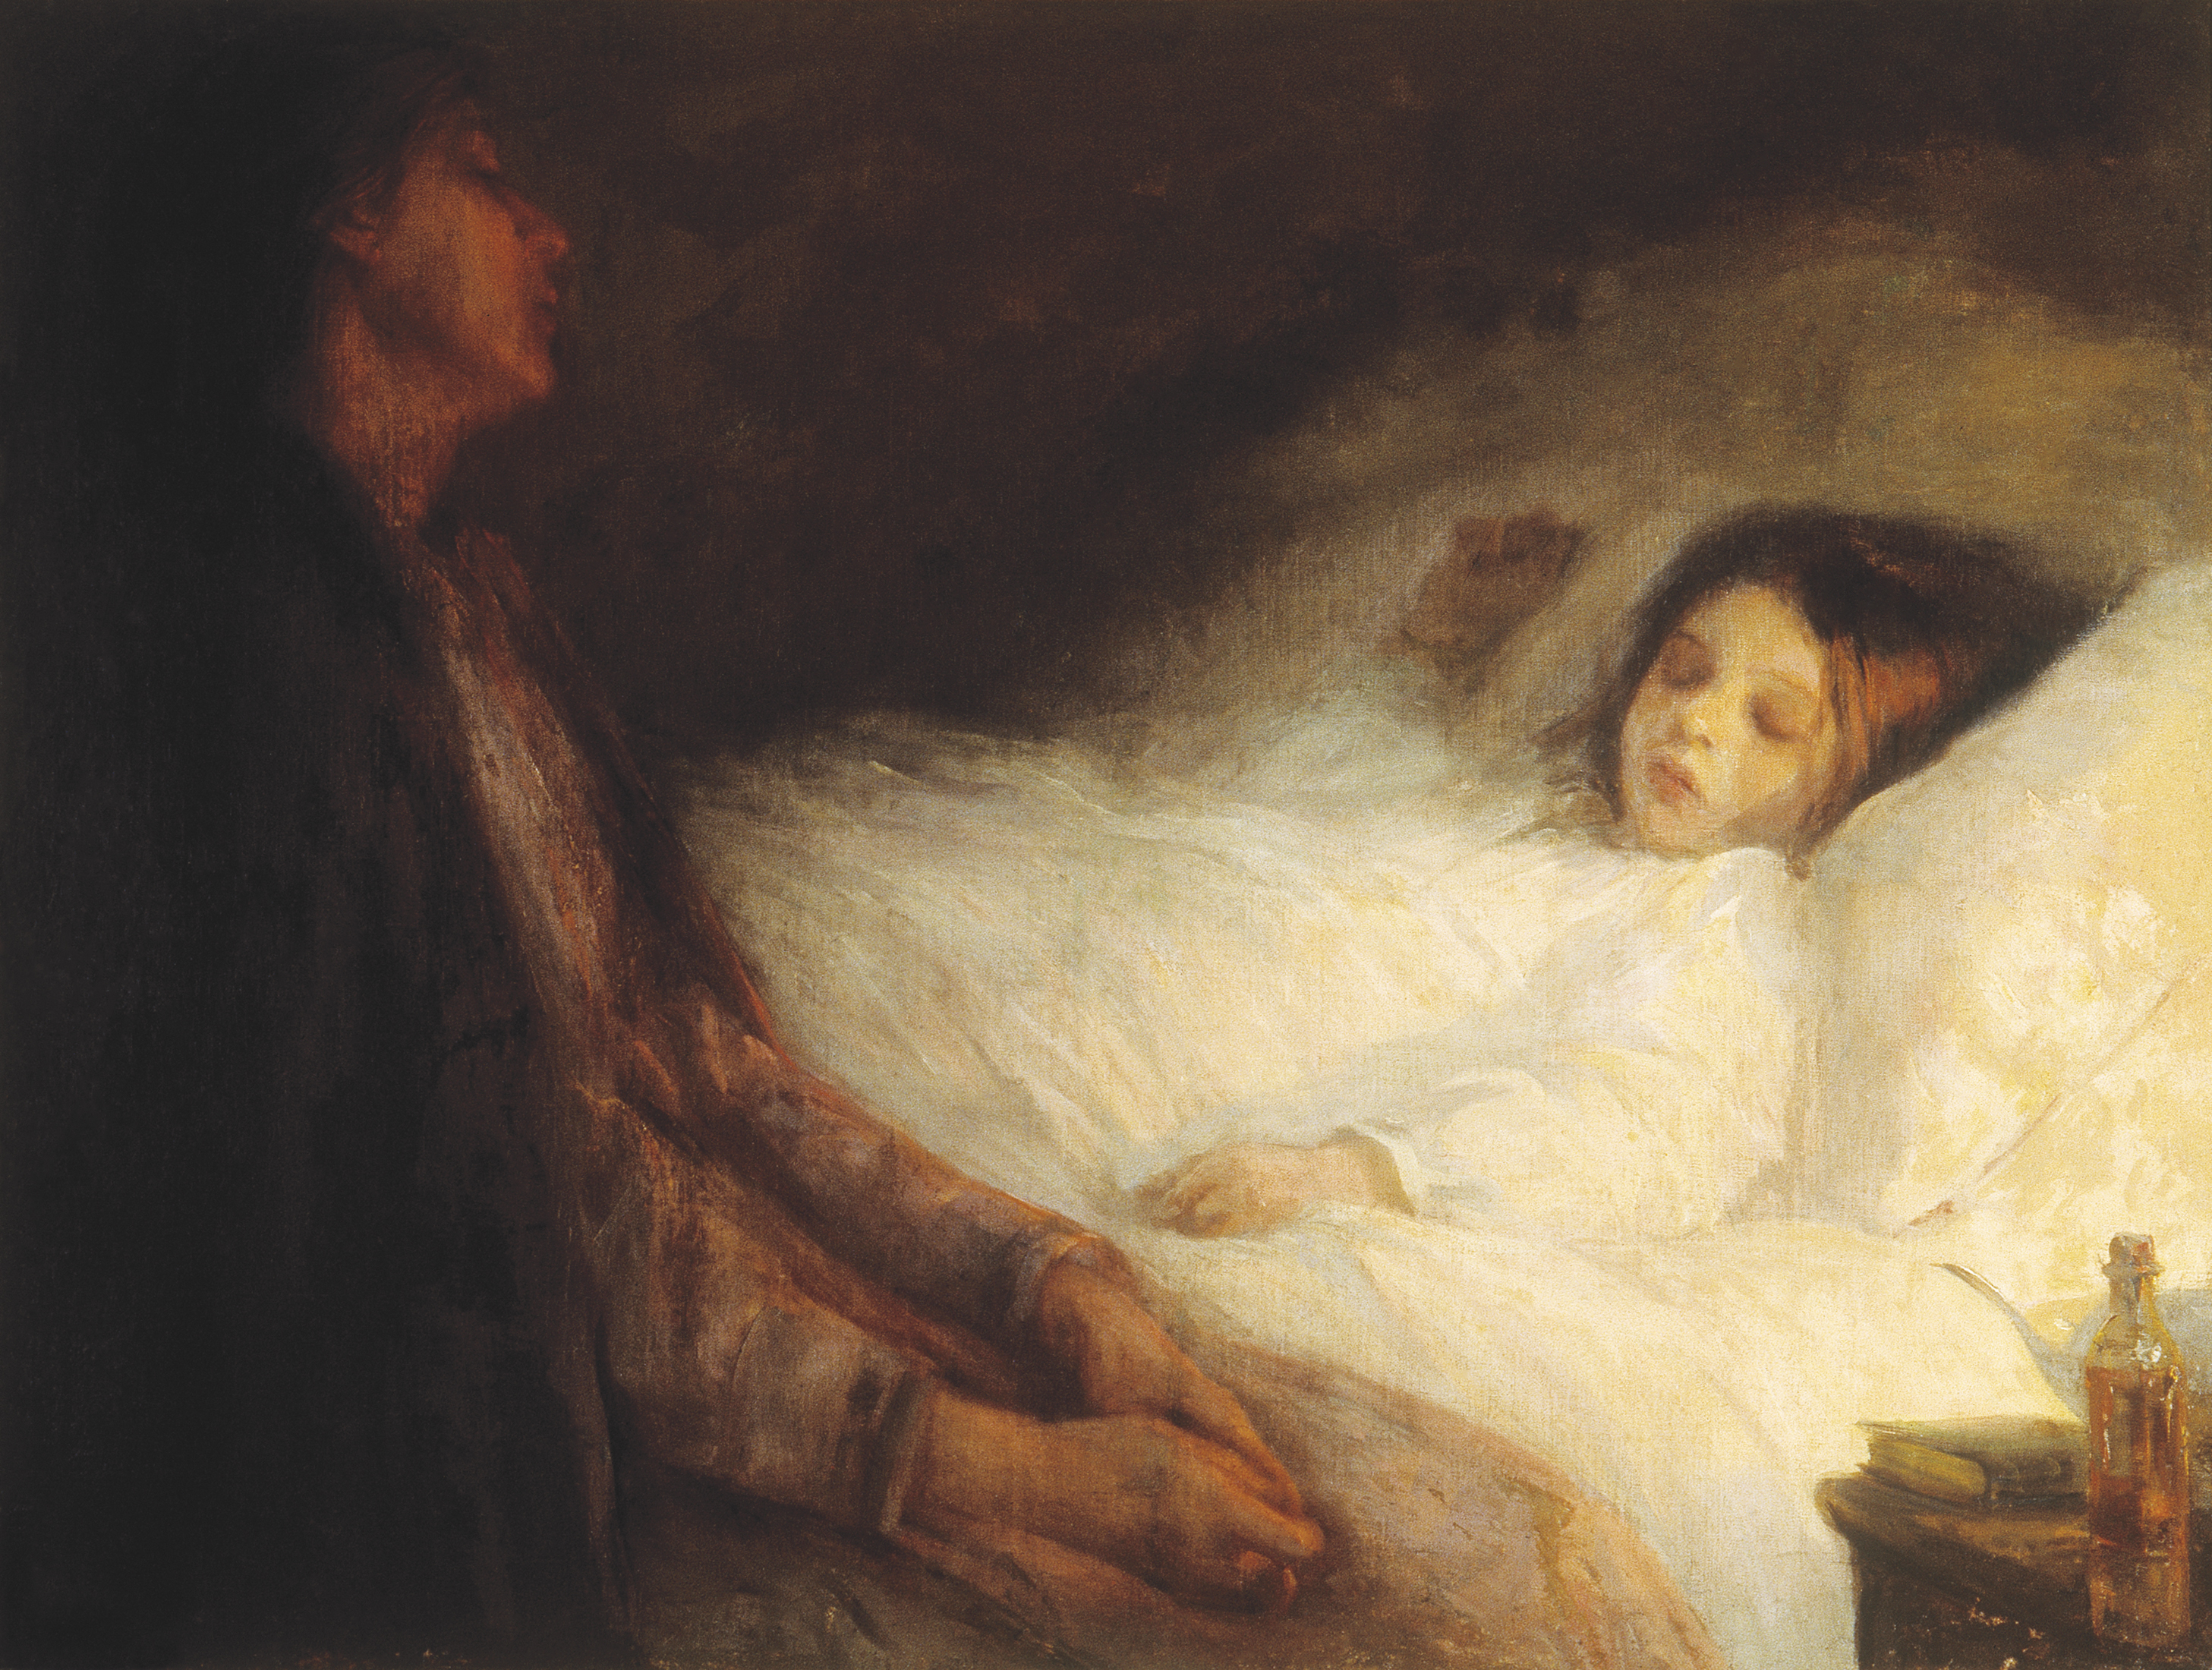 This painting shows a mother sitting on the edge of a bed, watching over her sleeping child. The mother is cast in shadow, while the child is bathed in white light. A book and a pharmacy bottle can be seen on the bedside table.